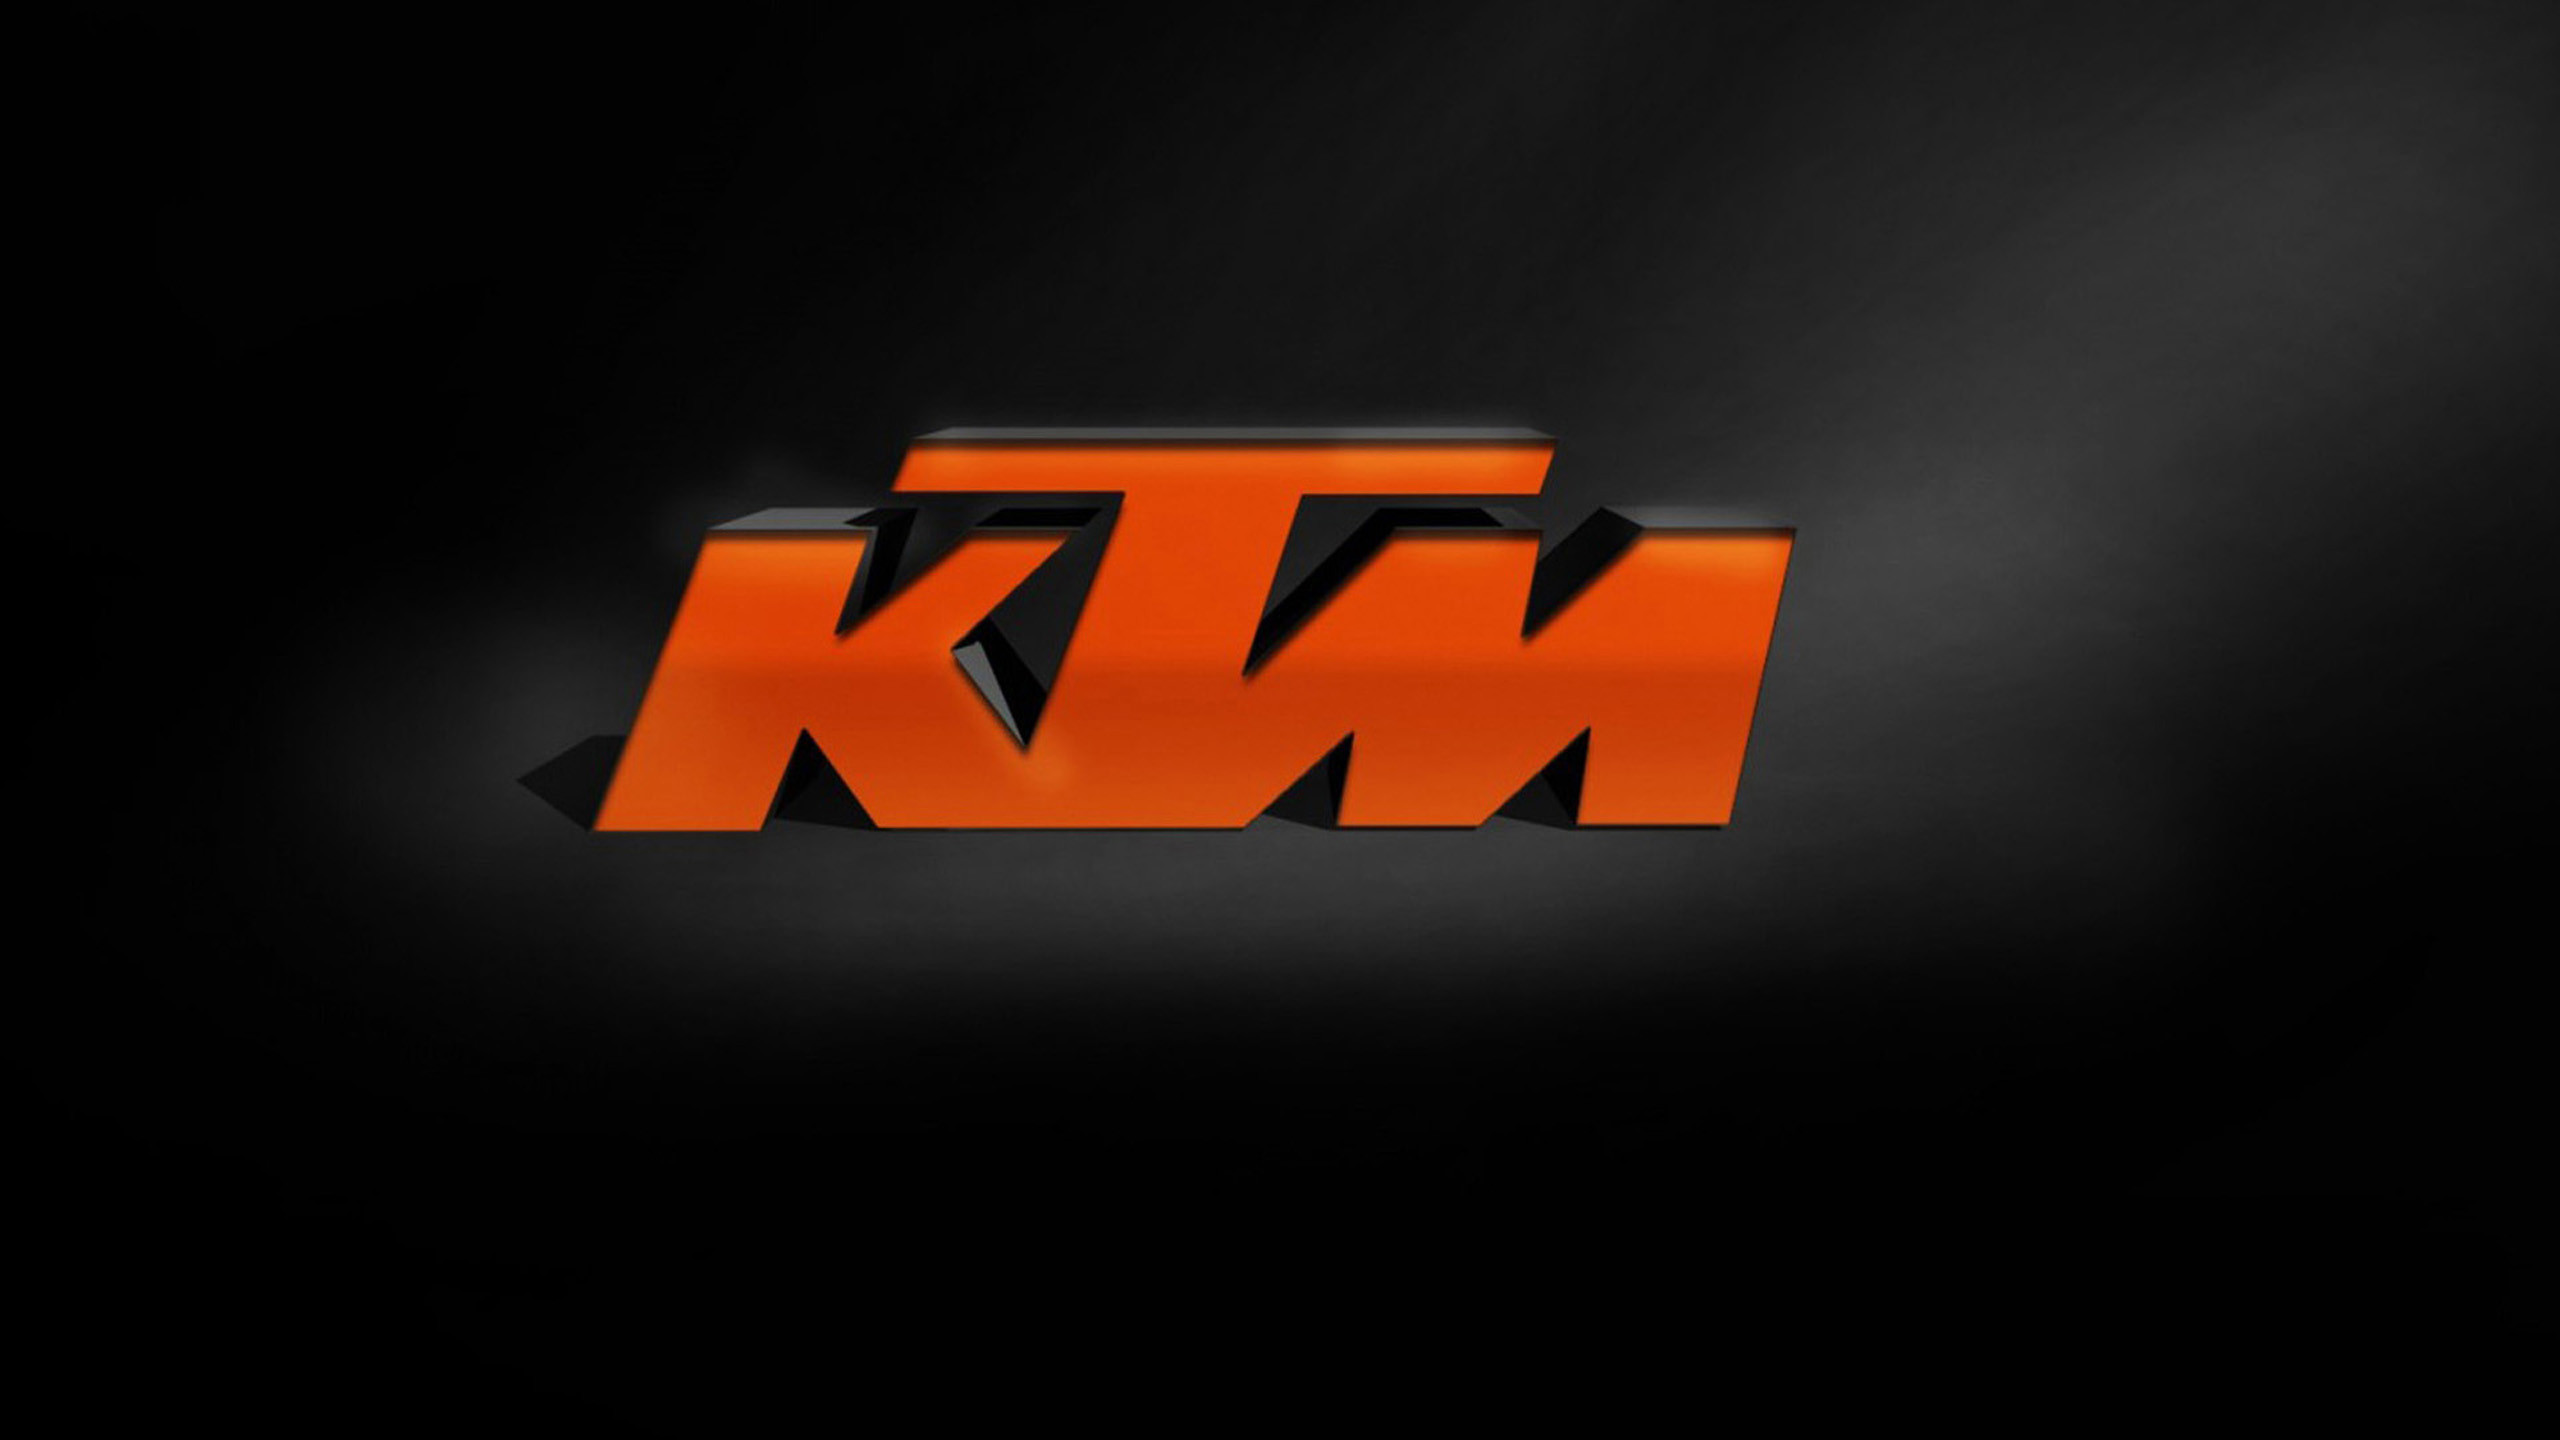 2560x1440 KTM Logo Wallpaper